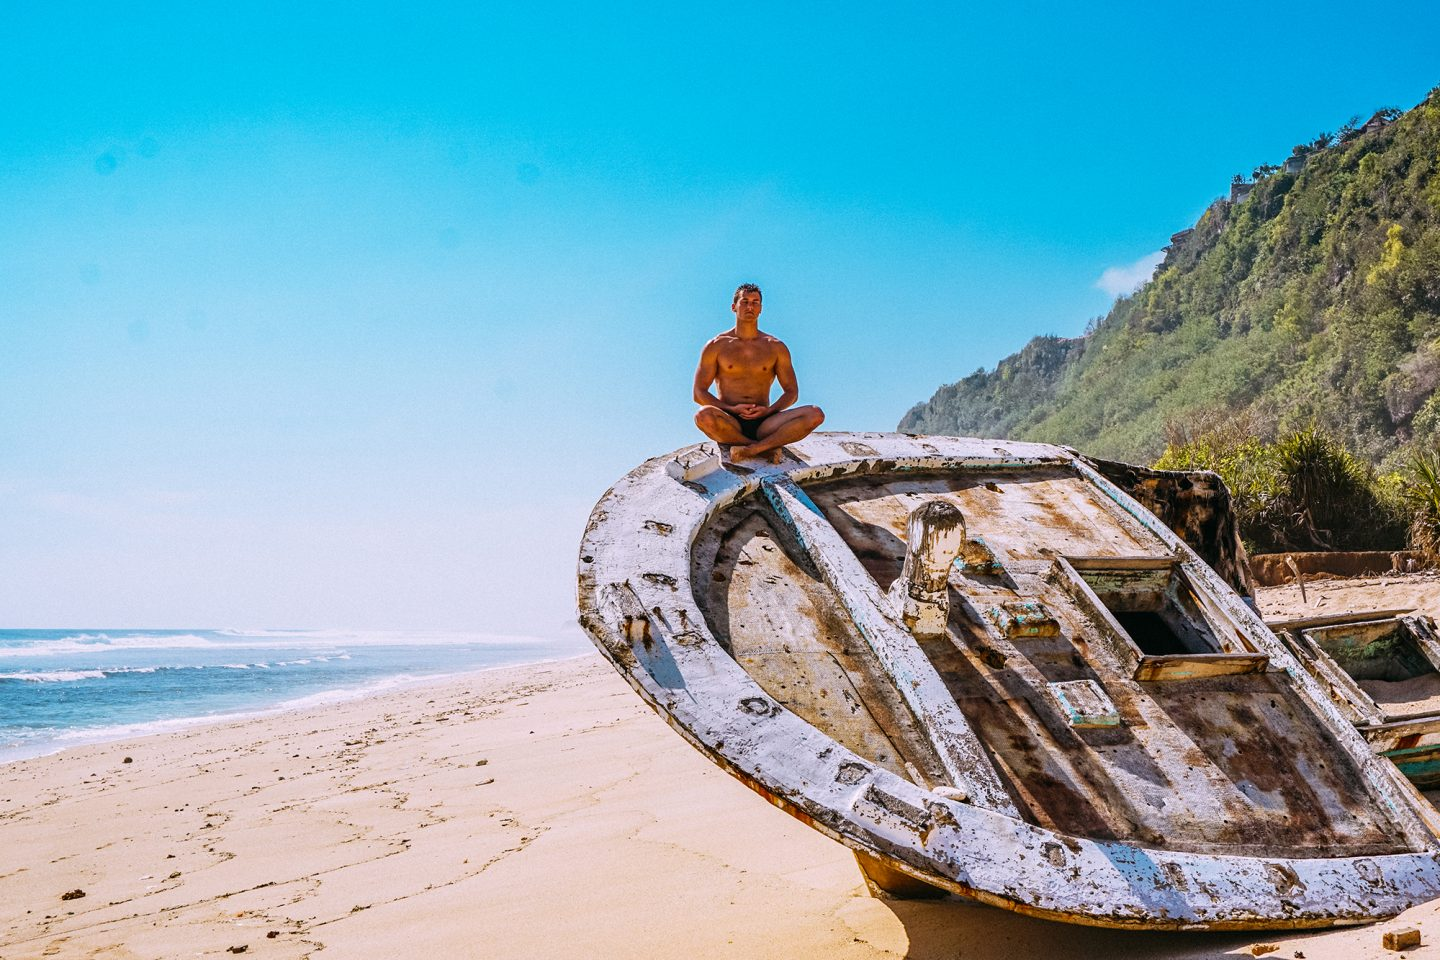 Guy sitting on a wooden boat at the beach.